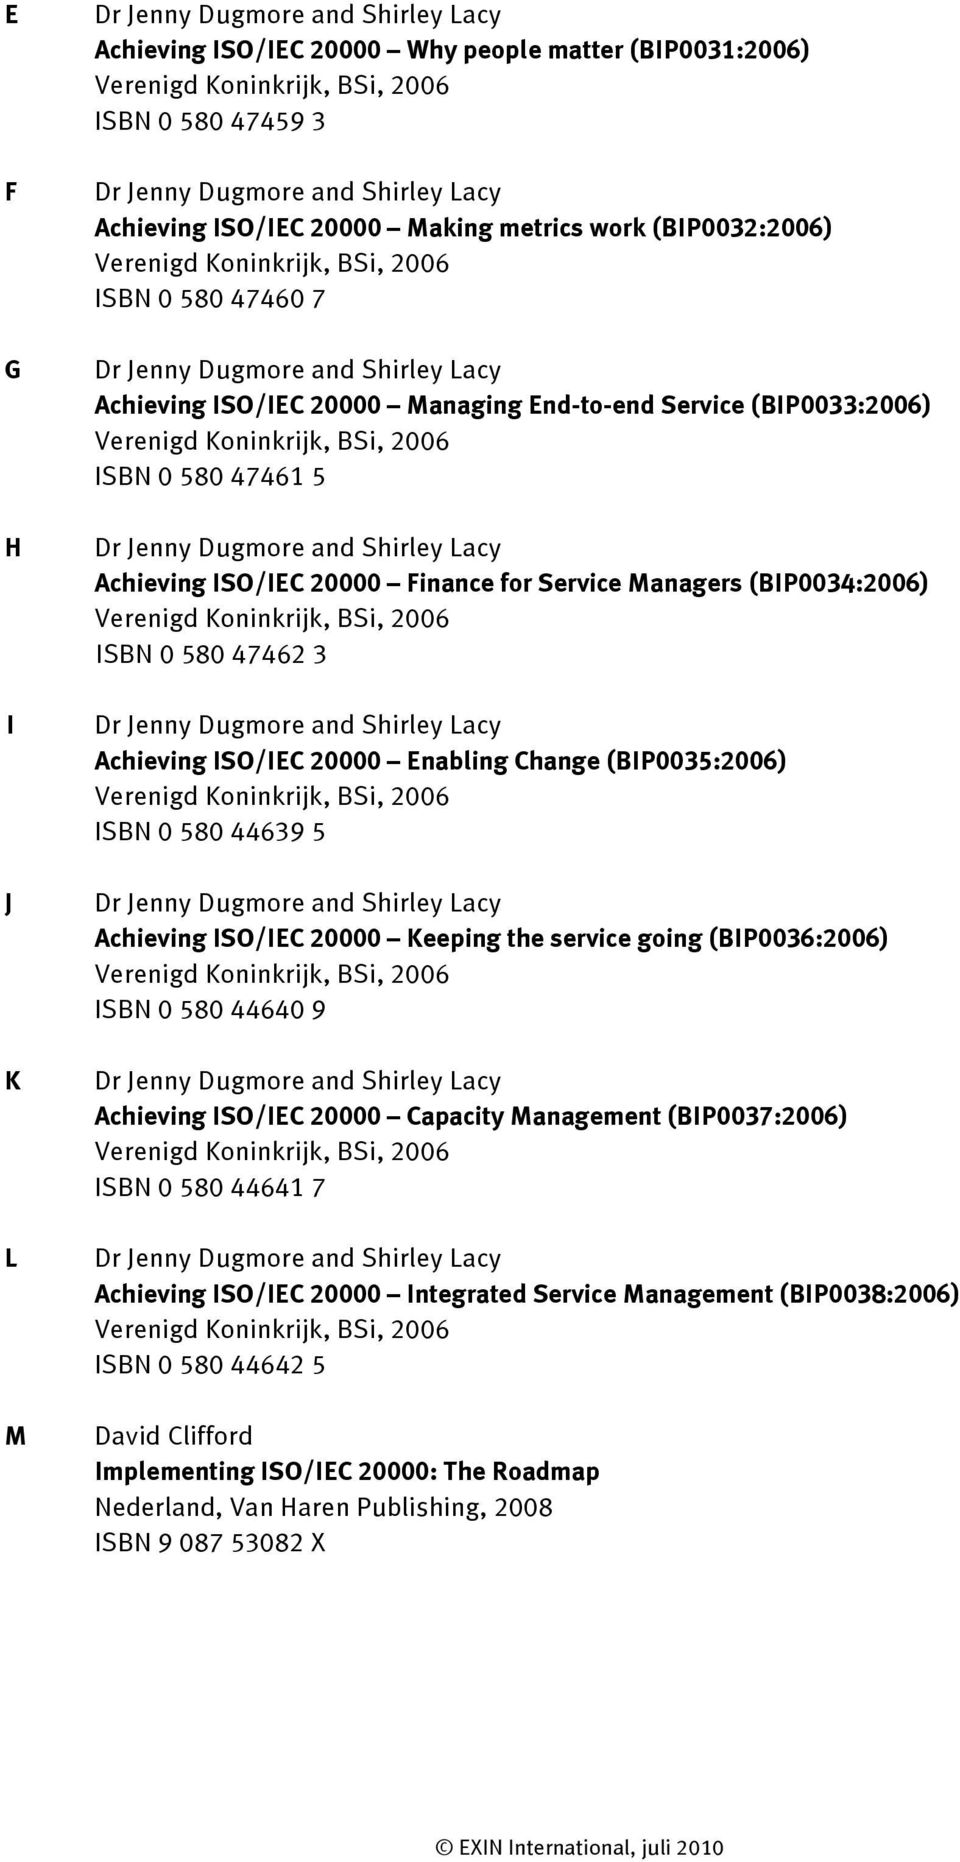 (BIP0035:2006) ISBN 0 580 44639 5 Achieving ISO/IEC 20000 Keeping the service going (BIP0036:2006) ISBN 0 580 44640 9 Achieving ISO/IEC 20000 Capacity Management (BIP0037:2006) ISBN 0 580 44641